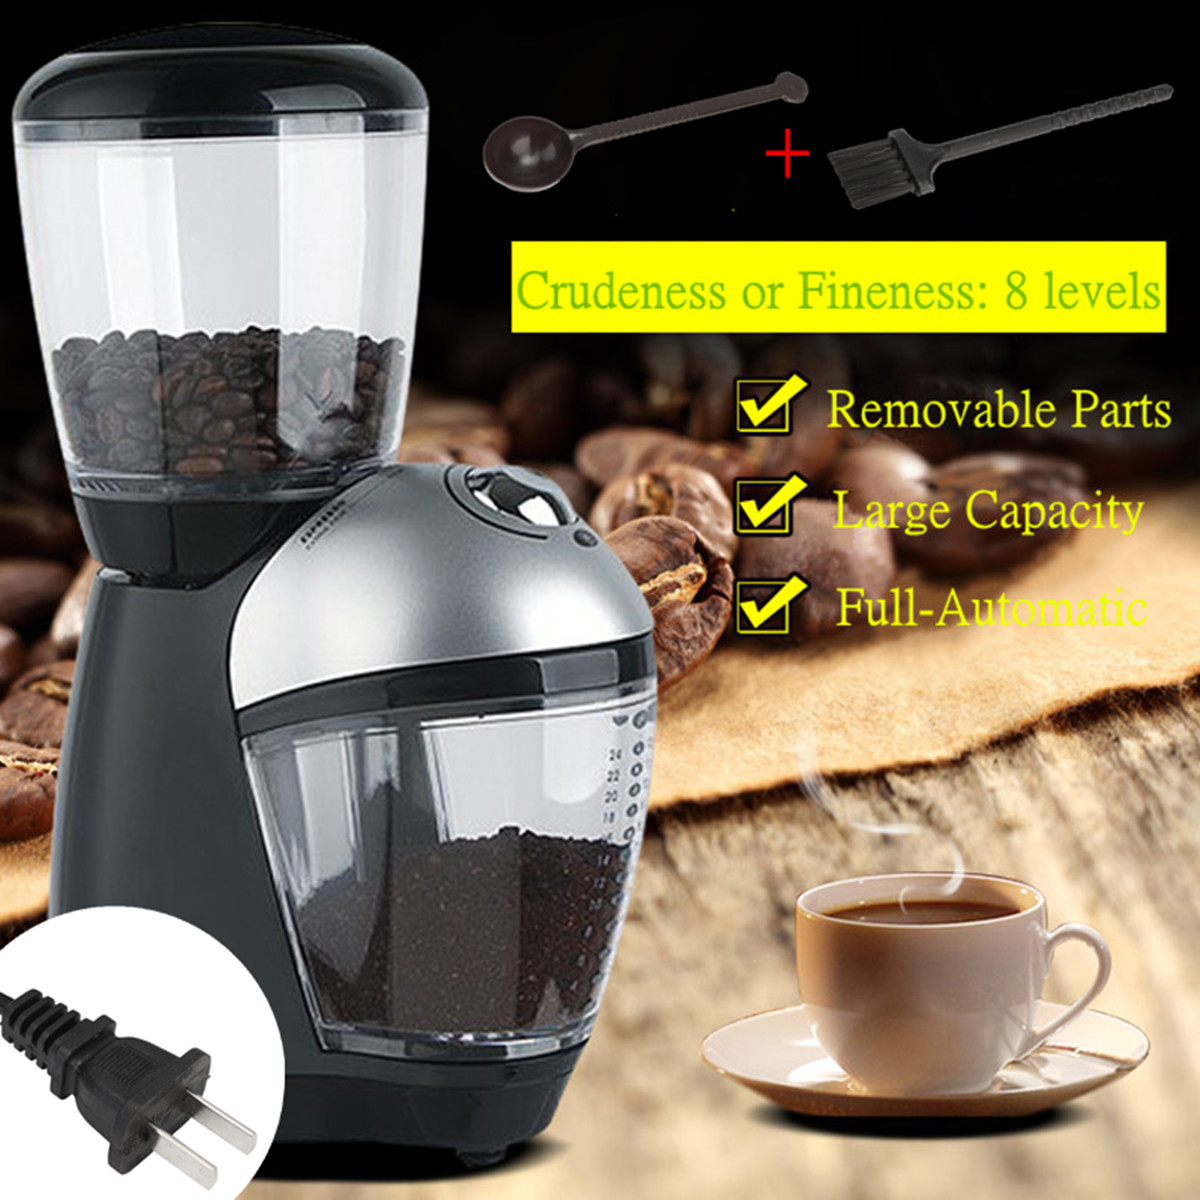 Electric Coffee Grinder Maker Small Electric Flour Mill Dry Grain Grinding Machine Mechanical Control US Plug Home Office цена